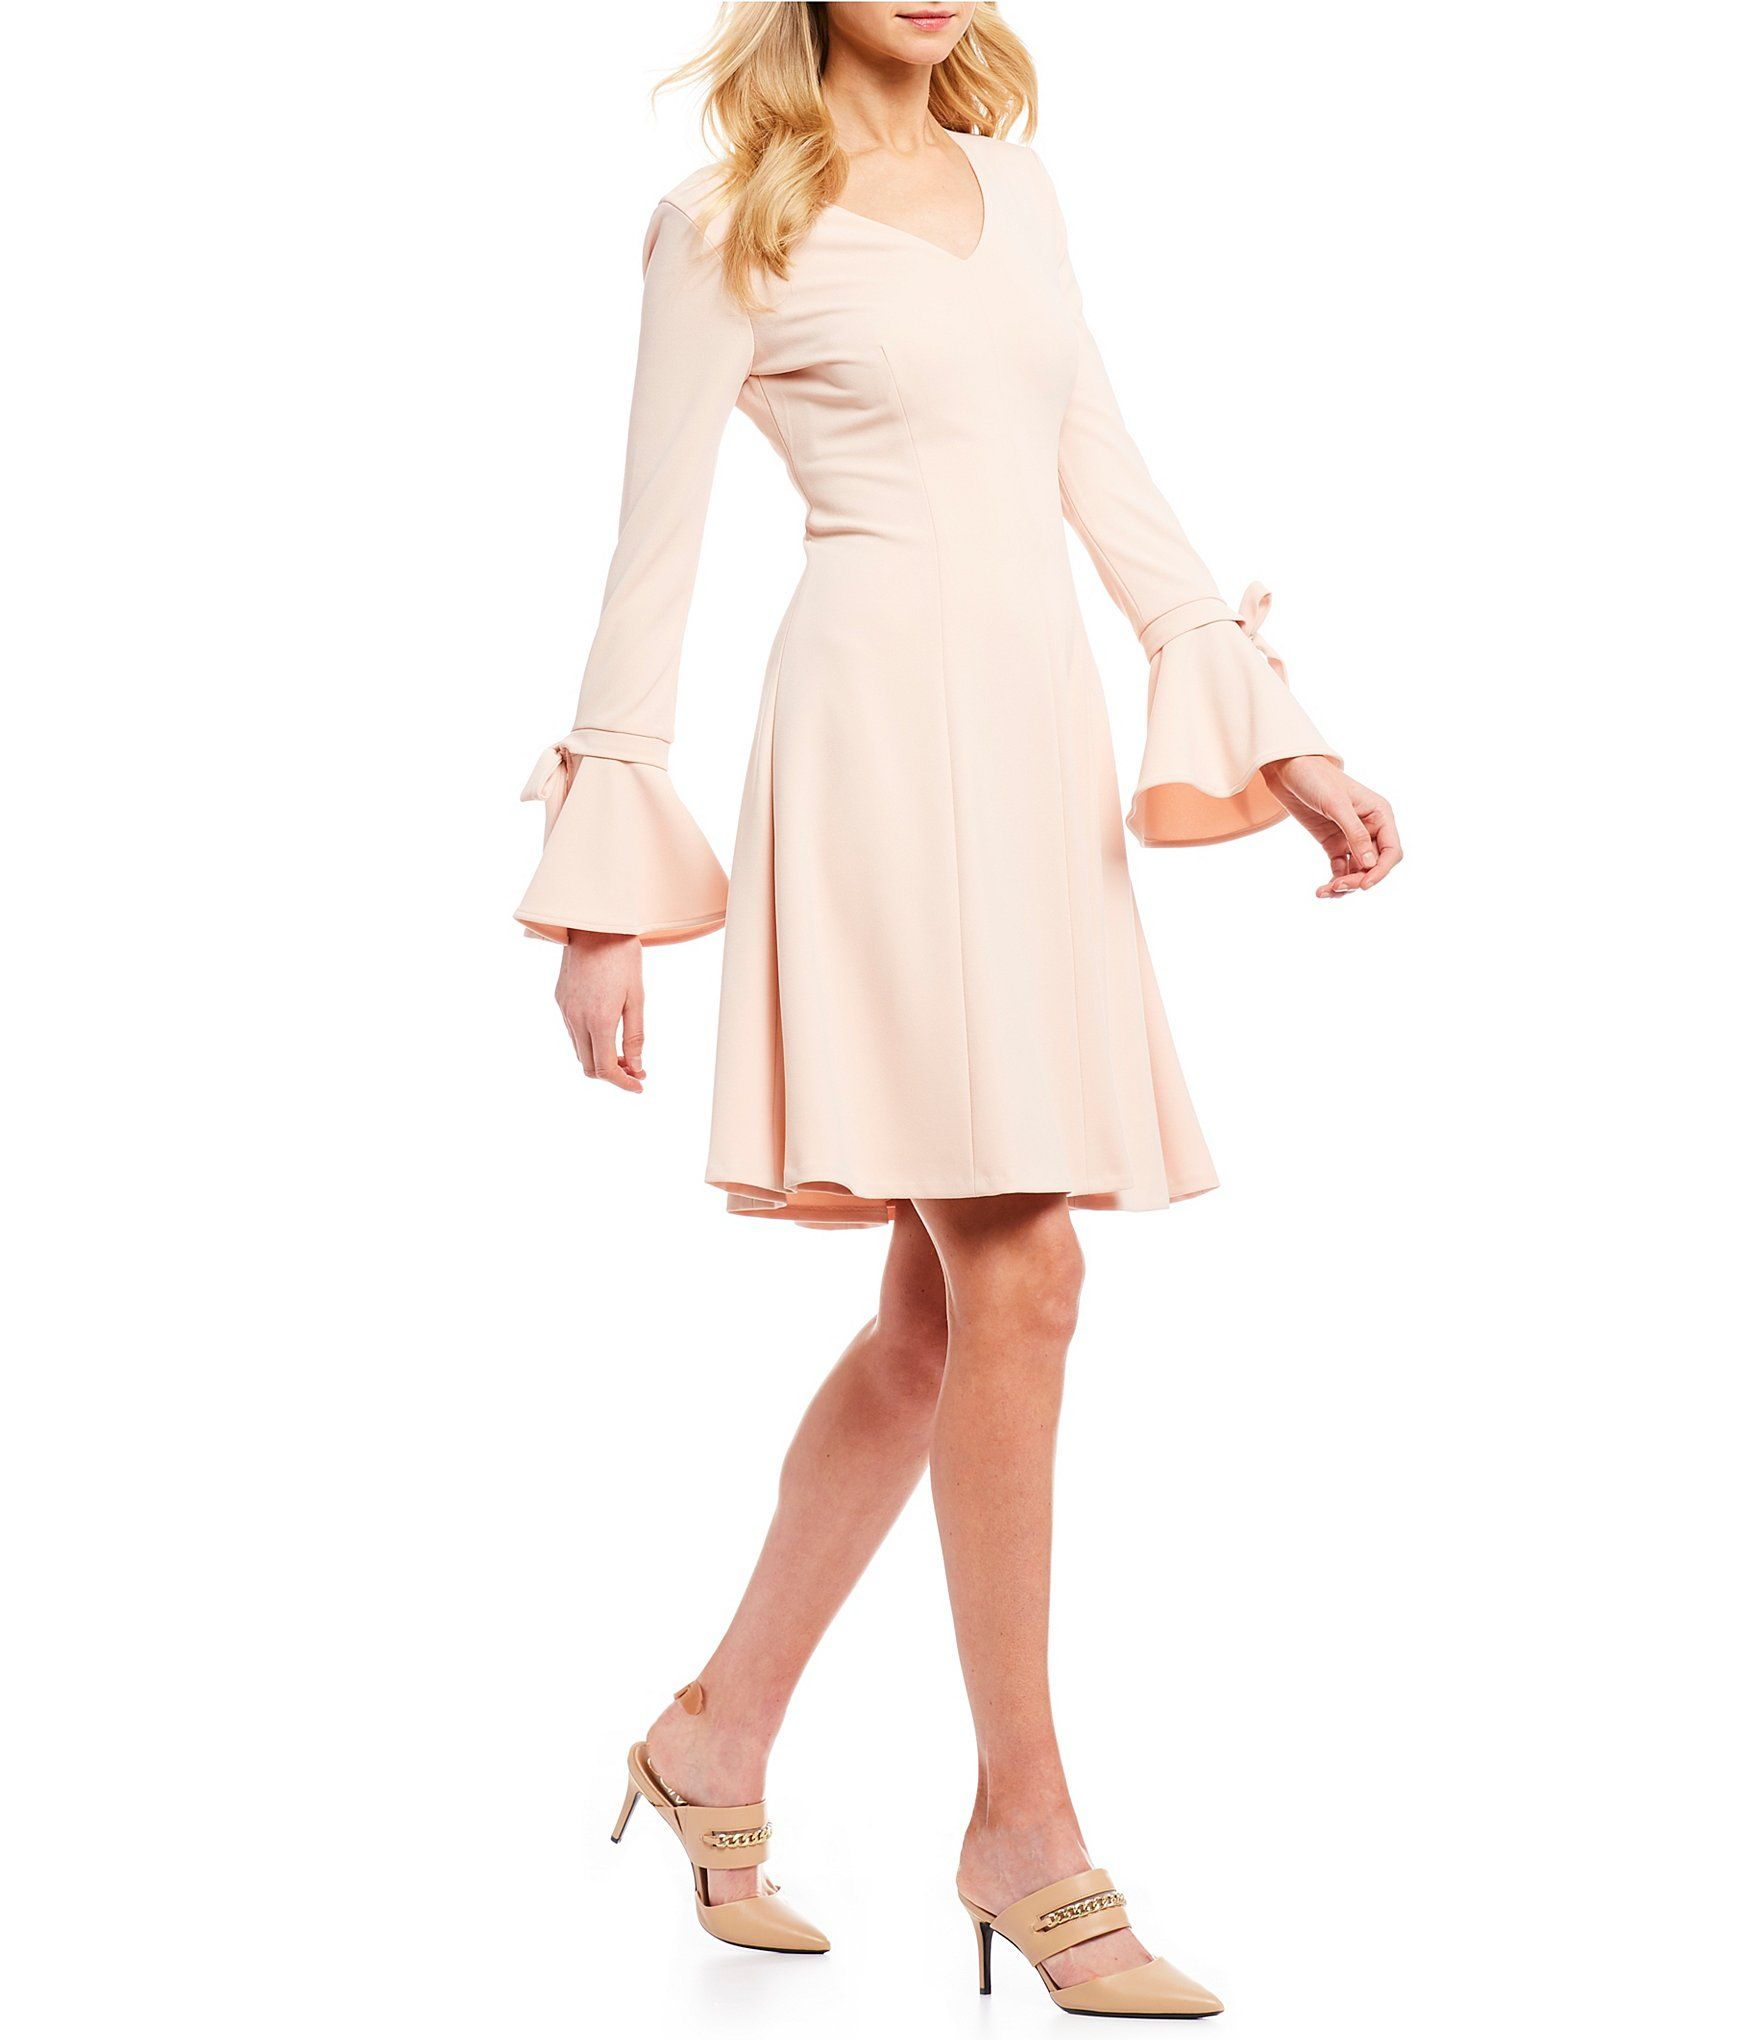 6760ada57ac Shop for Calvin Klein A-Line Ribbon Tie Bell Sleeve Dress at Dillards.com.  Visit Dillards.com to find clothing